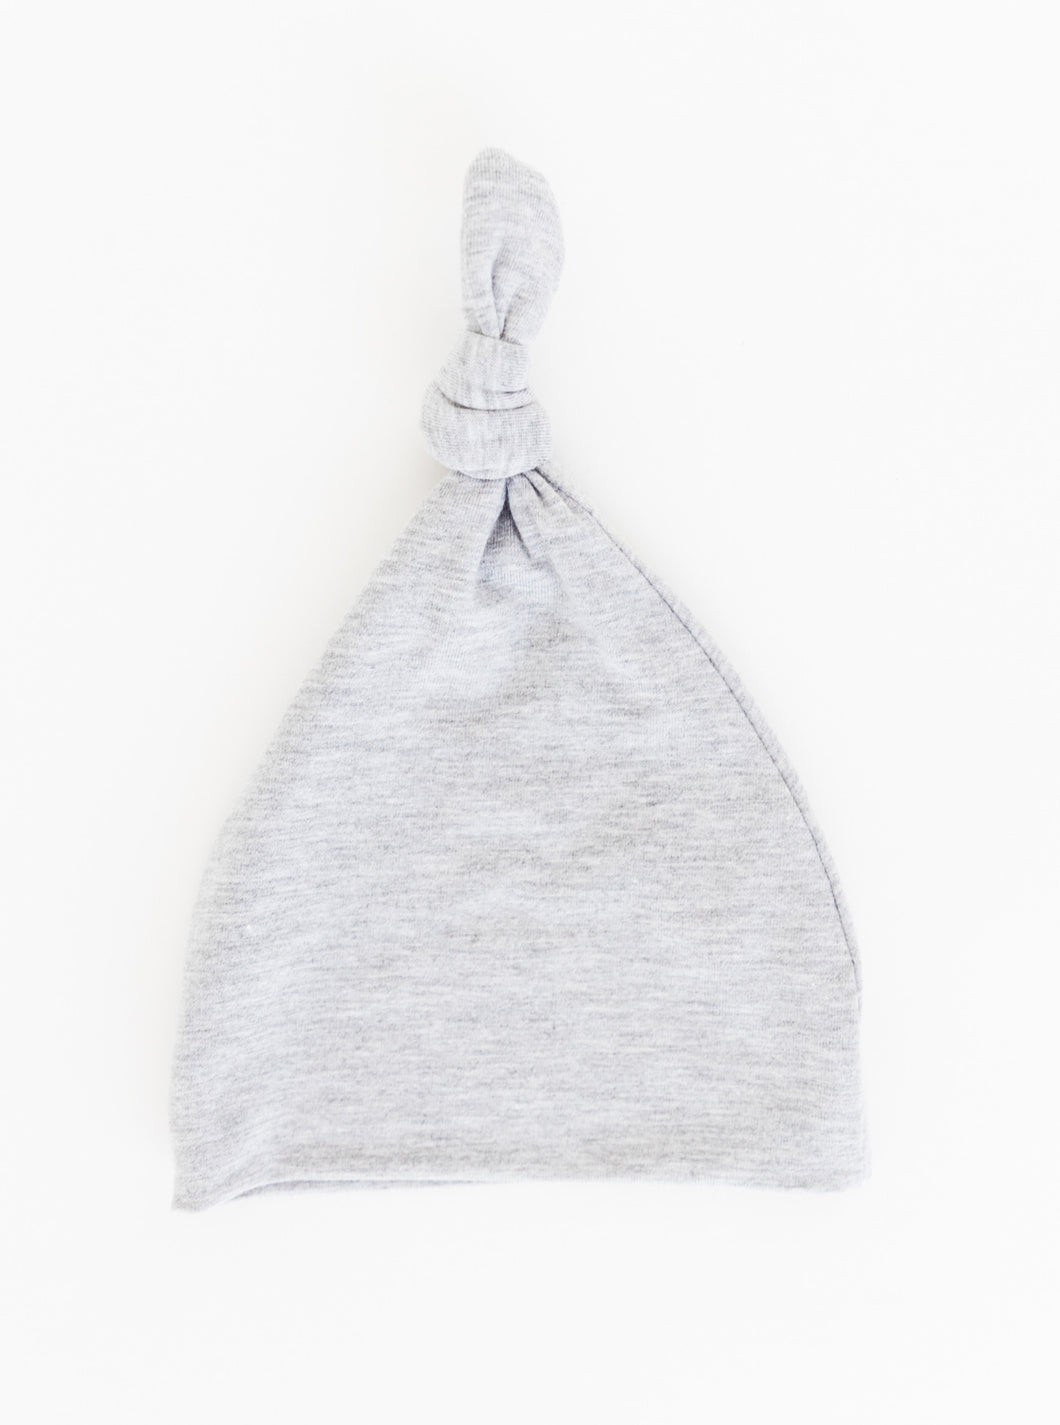 our bamboo top knot hat for babies in our heathered grey colour available in size 0-3 months